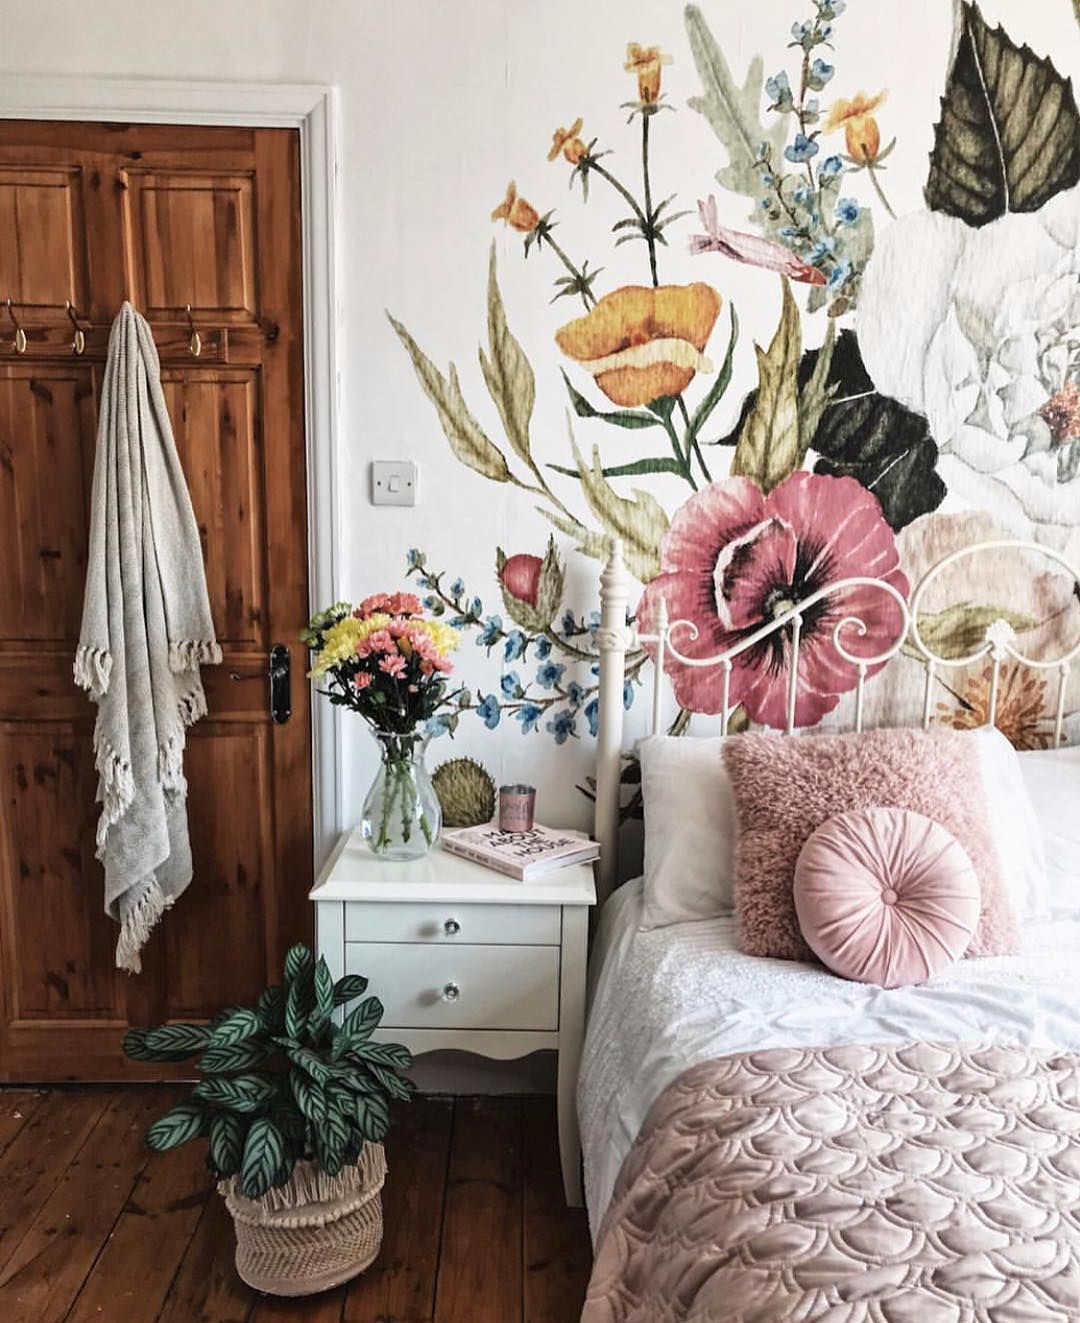 172 Likes 6 Comments Bedrooms Slaapkamers